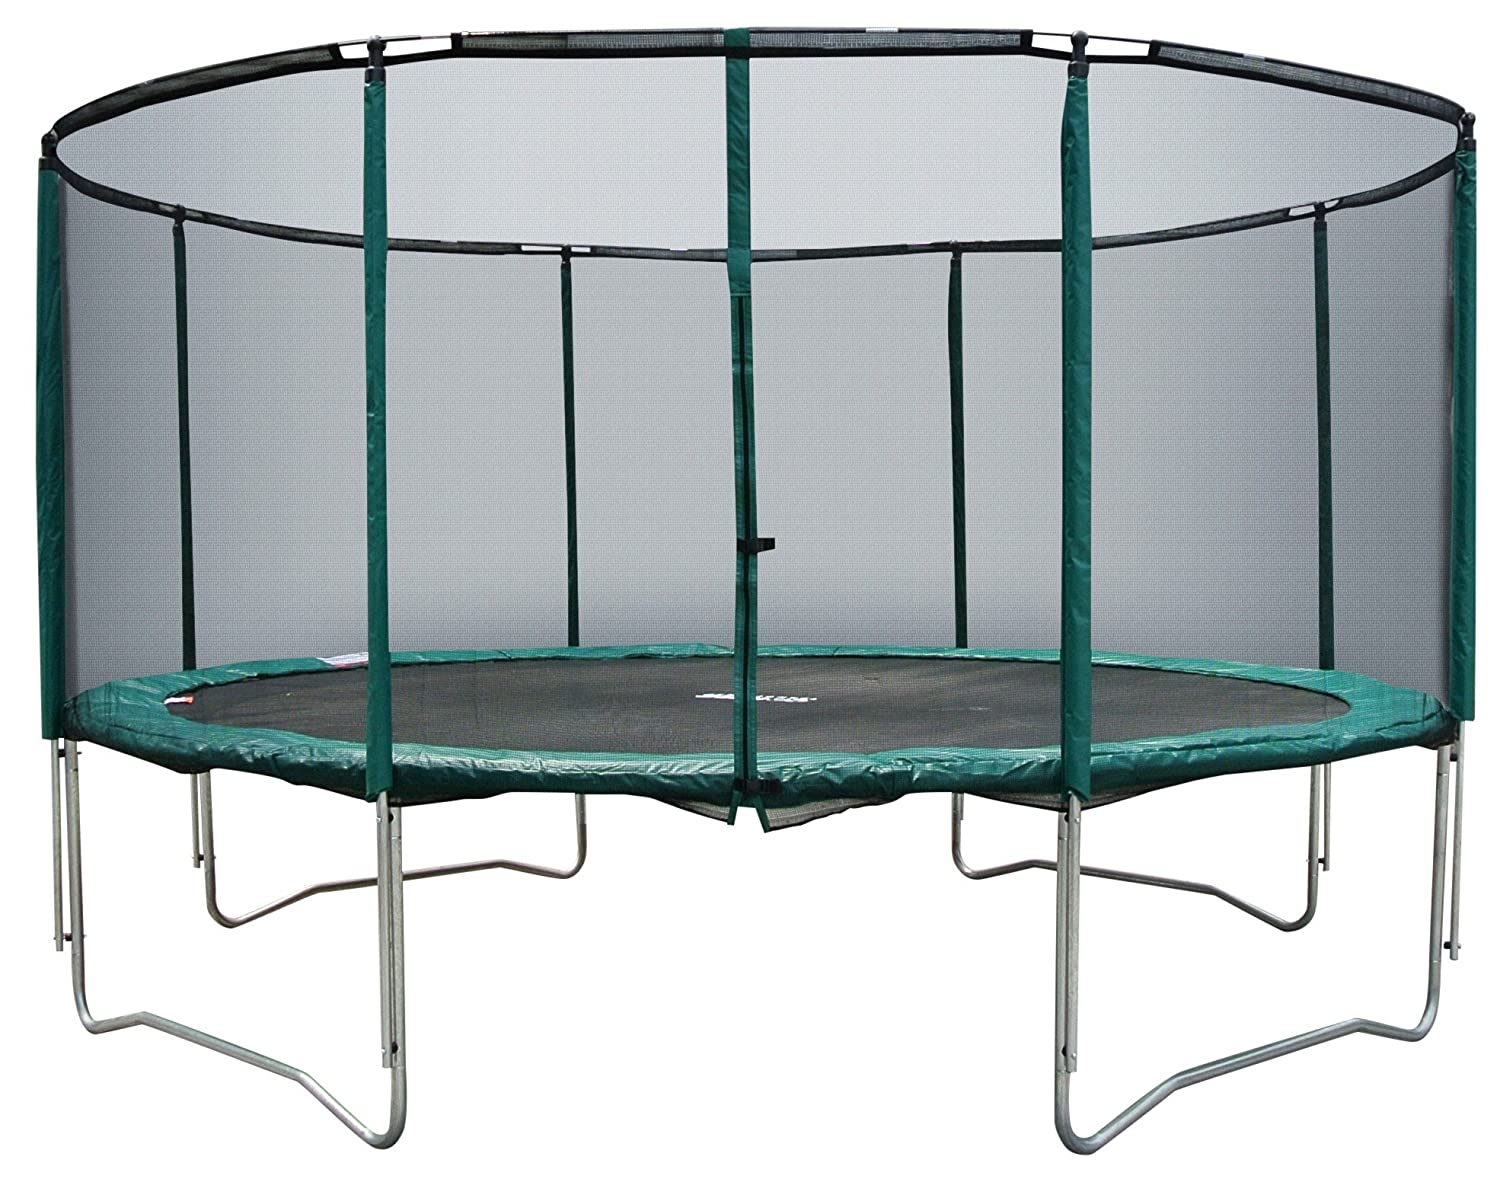 Cortez Premier 12ft Trampoline With Enclosure And Free Ladder:  Amazon.co.uk: Sports U0026 Outdoors